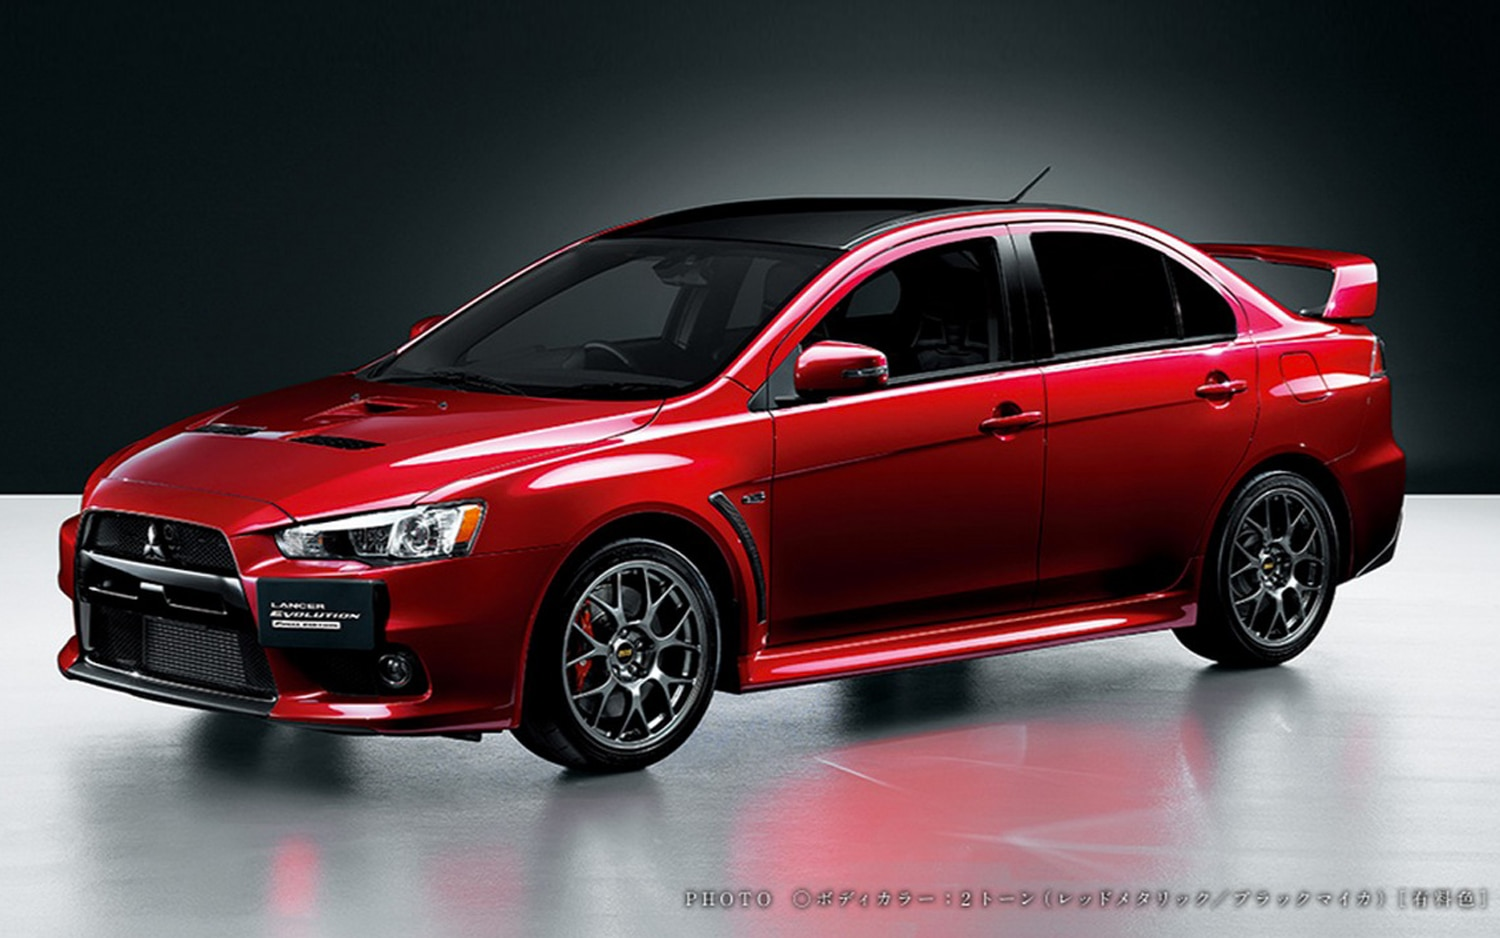 mitsubishi lancer evolution x final edition revealed for japan. Black Bedroom Furniture Sets. Home Design Ideas